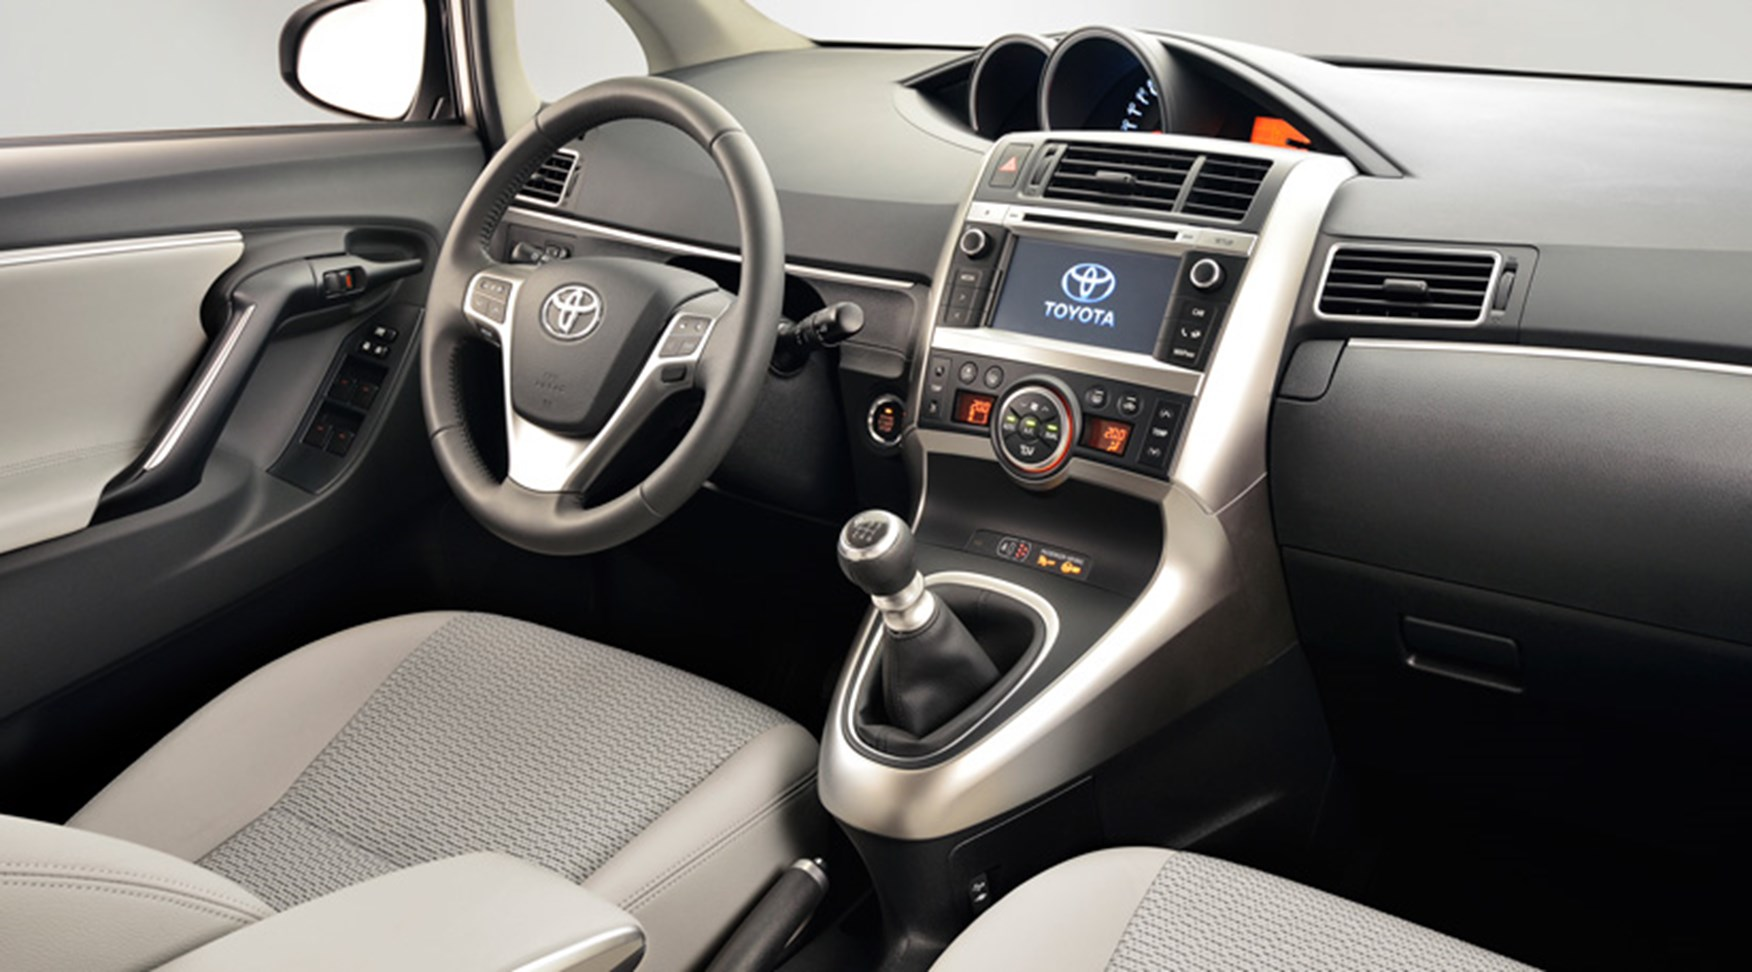 Toyota Verso 1.6 D-4D Excel (2014) review by CAR Magazine